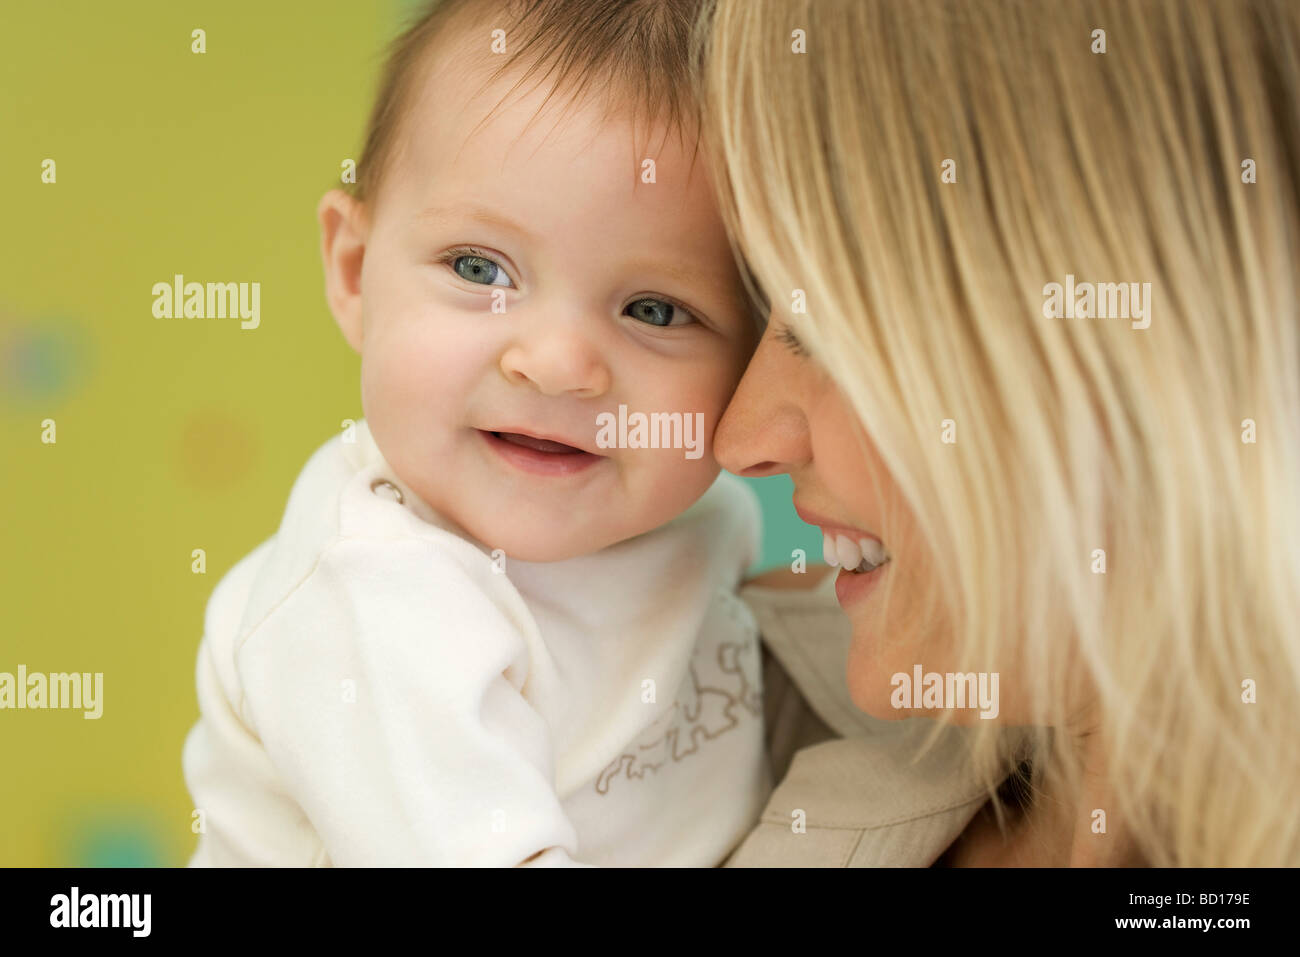 Mother holding baby next to face, close-up - Stock Image